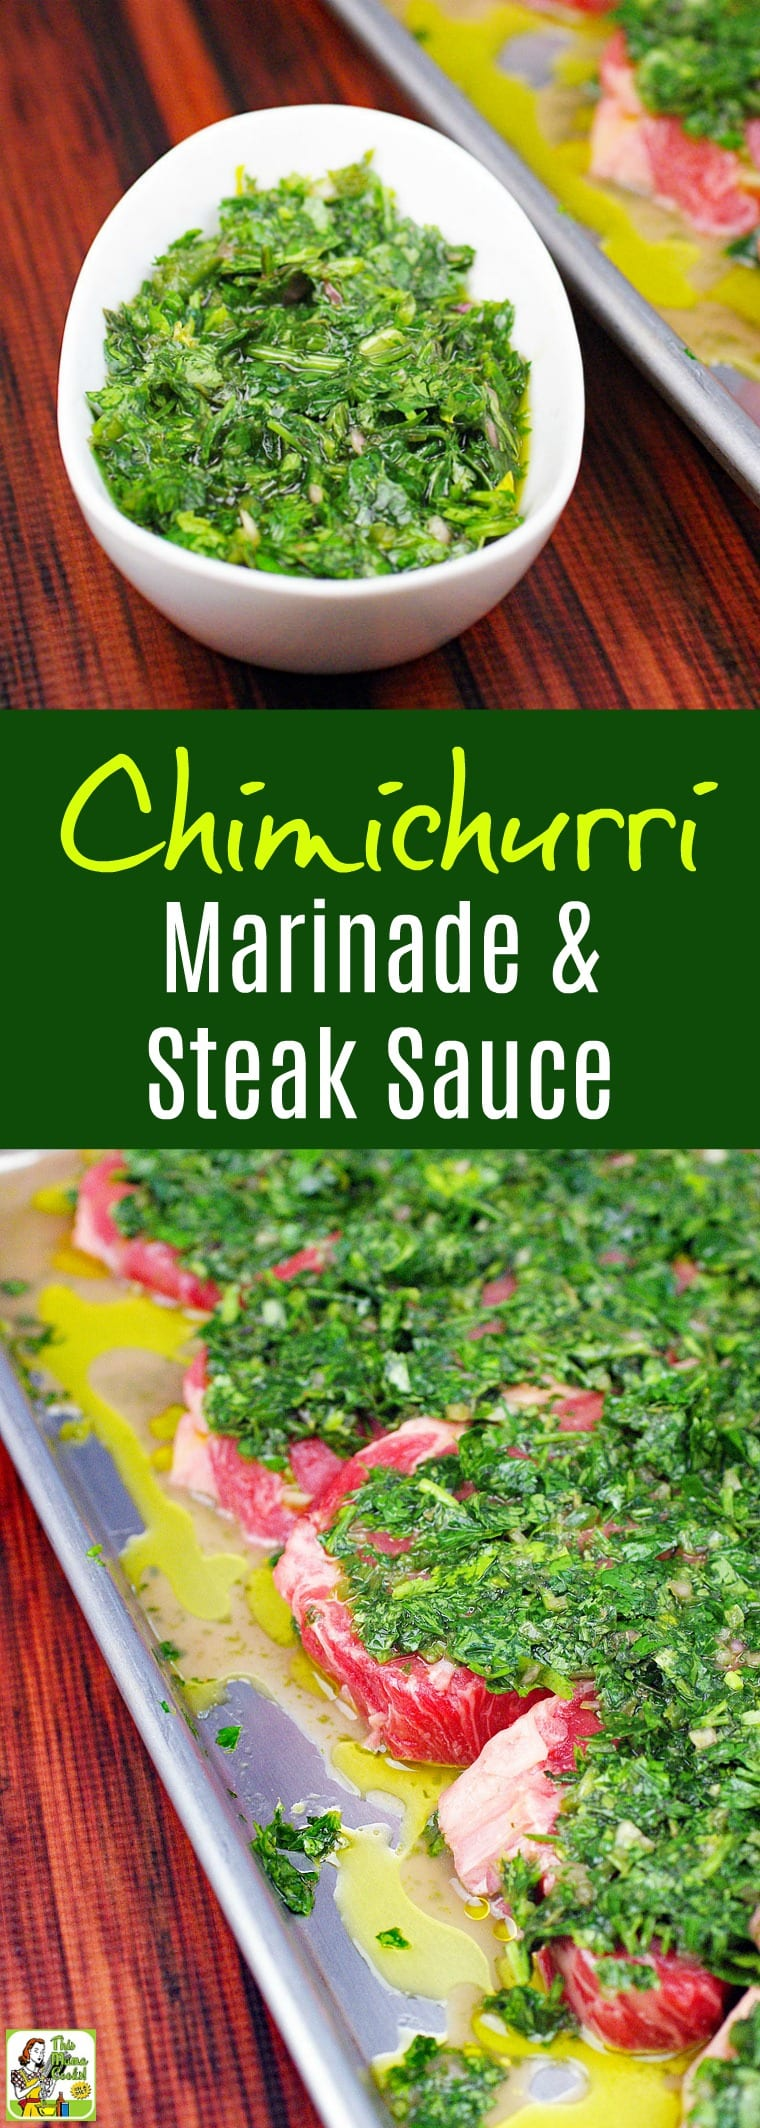 S le Passed Appetizers additionally Chef Column Fire Up The Barbecue Argentina Style likewise Skirt Steak Recipe in addition Churrasco Steak likewise Recipes Beyond Cuba Foods Of Latino Caribbean Cuisine. on skirt steak with chimichurri sauce